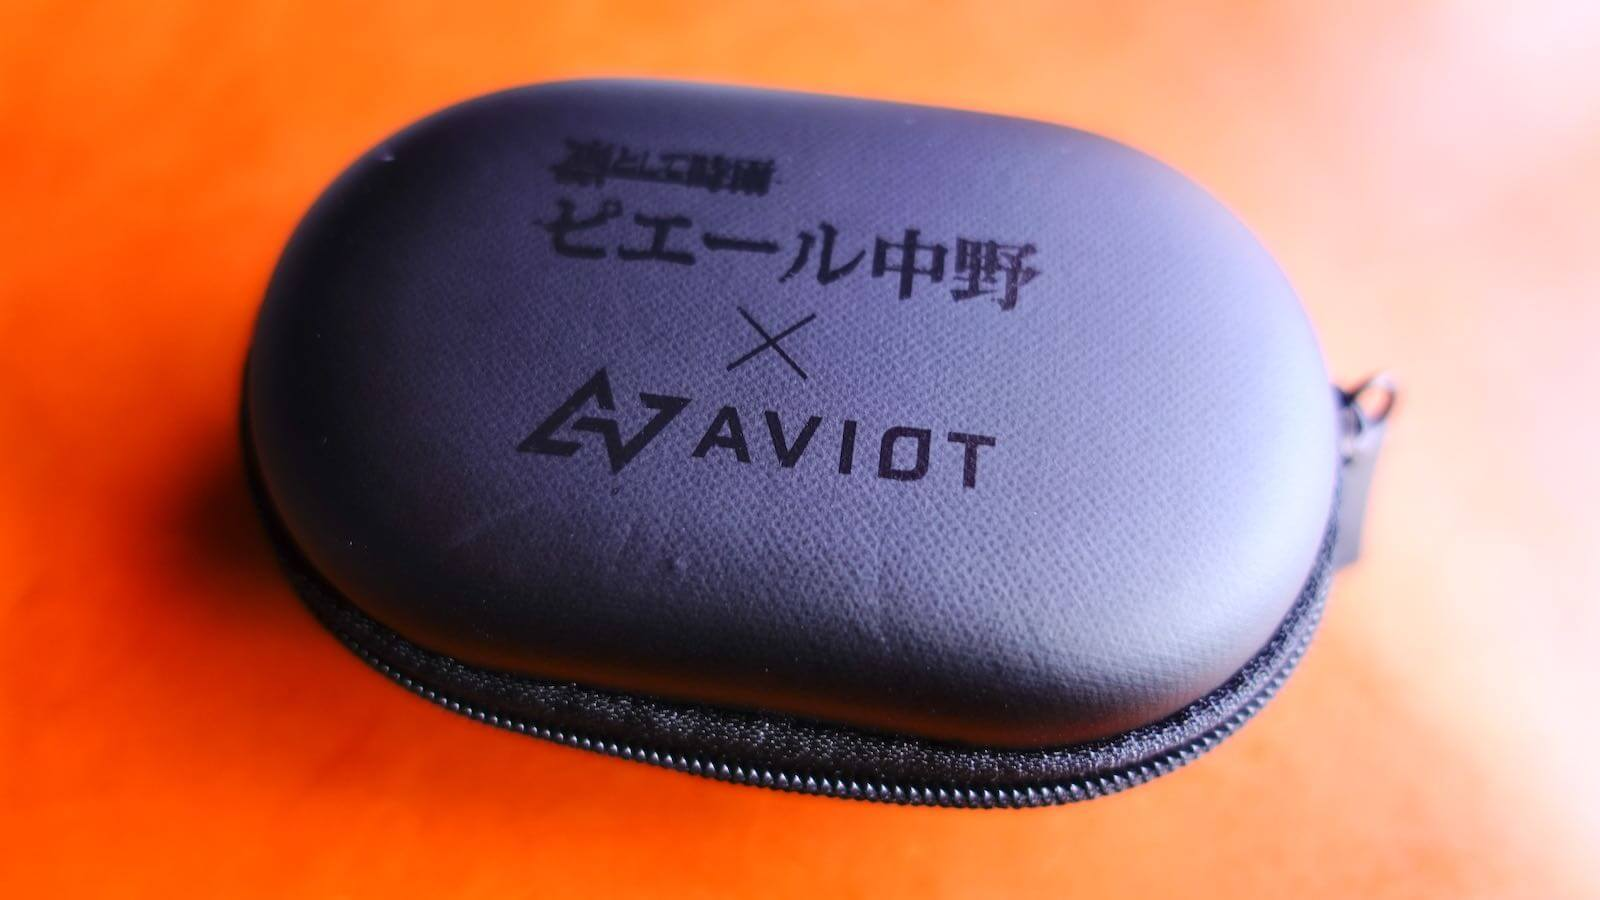 0222 aviot te bd21f pnk review 07